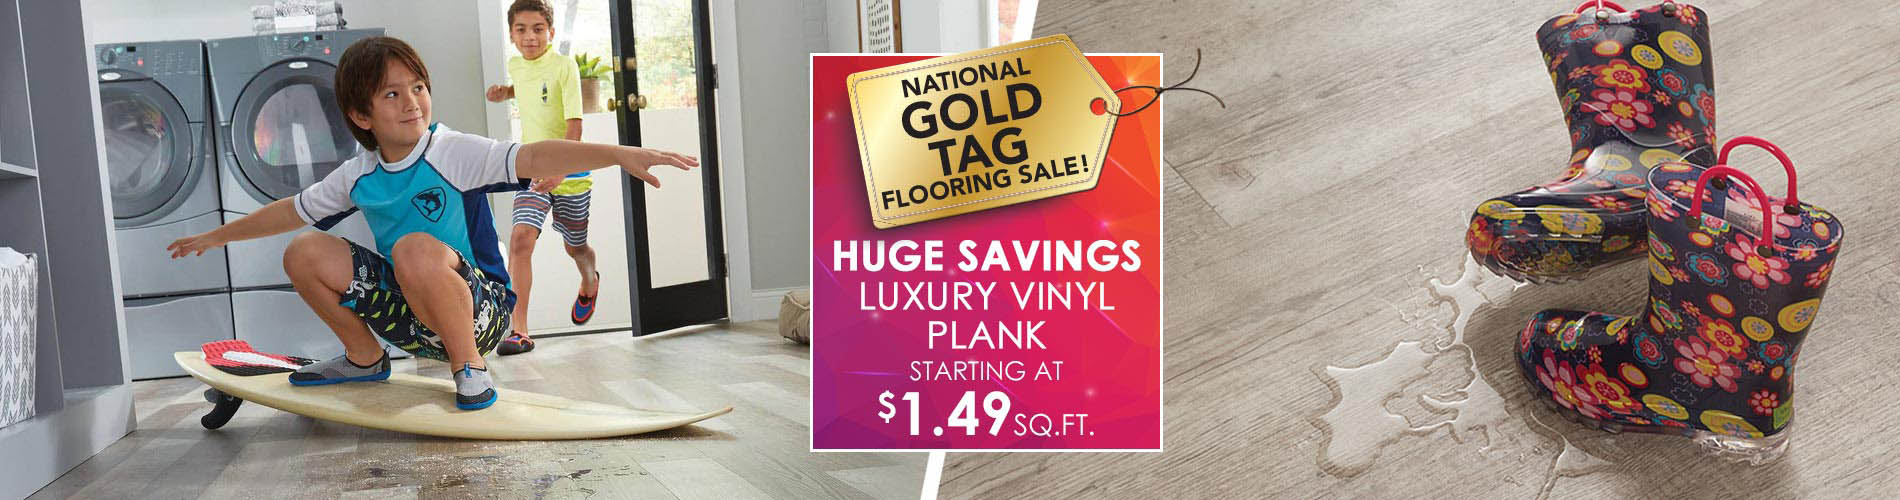 Luxury vinyl plank starting at $1.49 sq.ft.